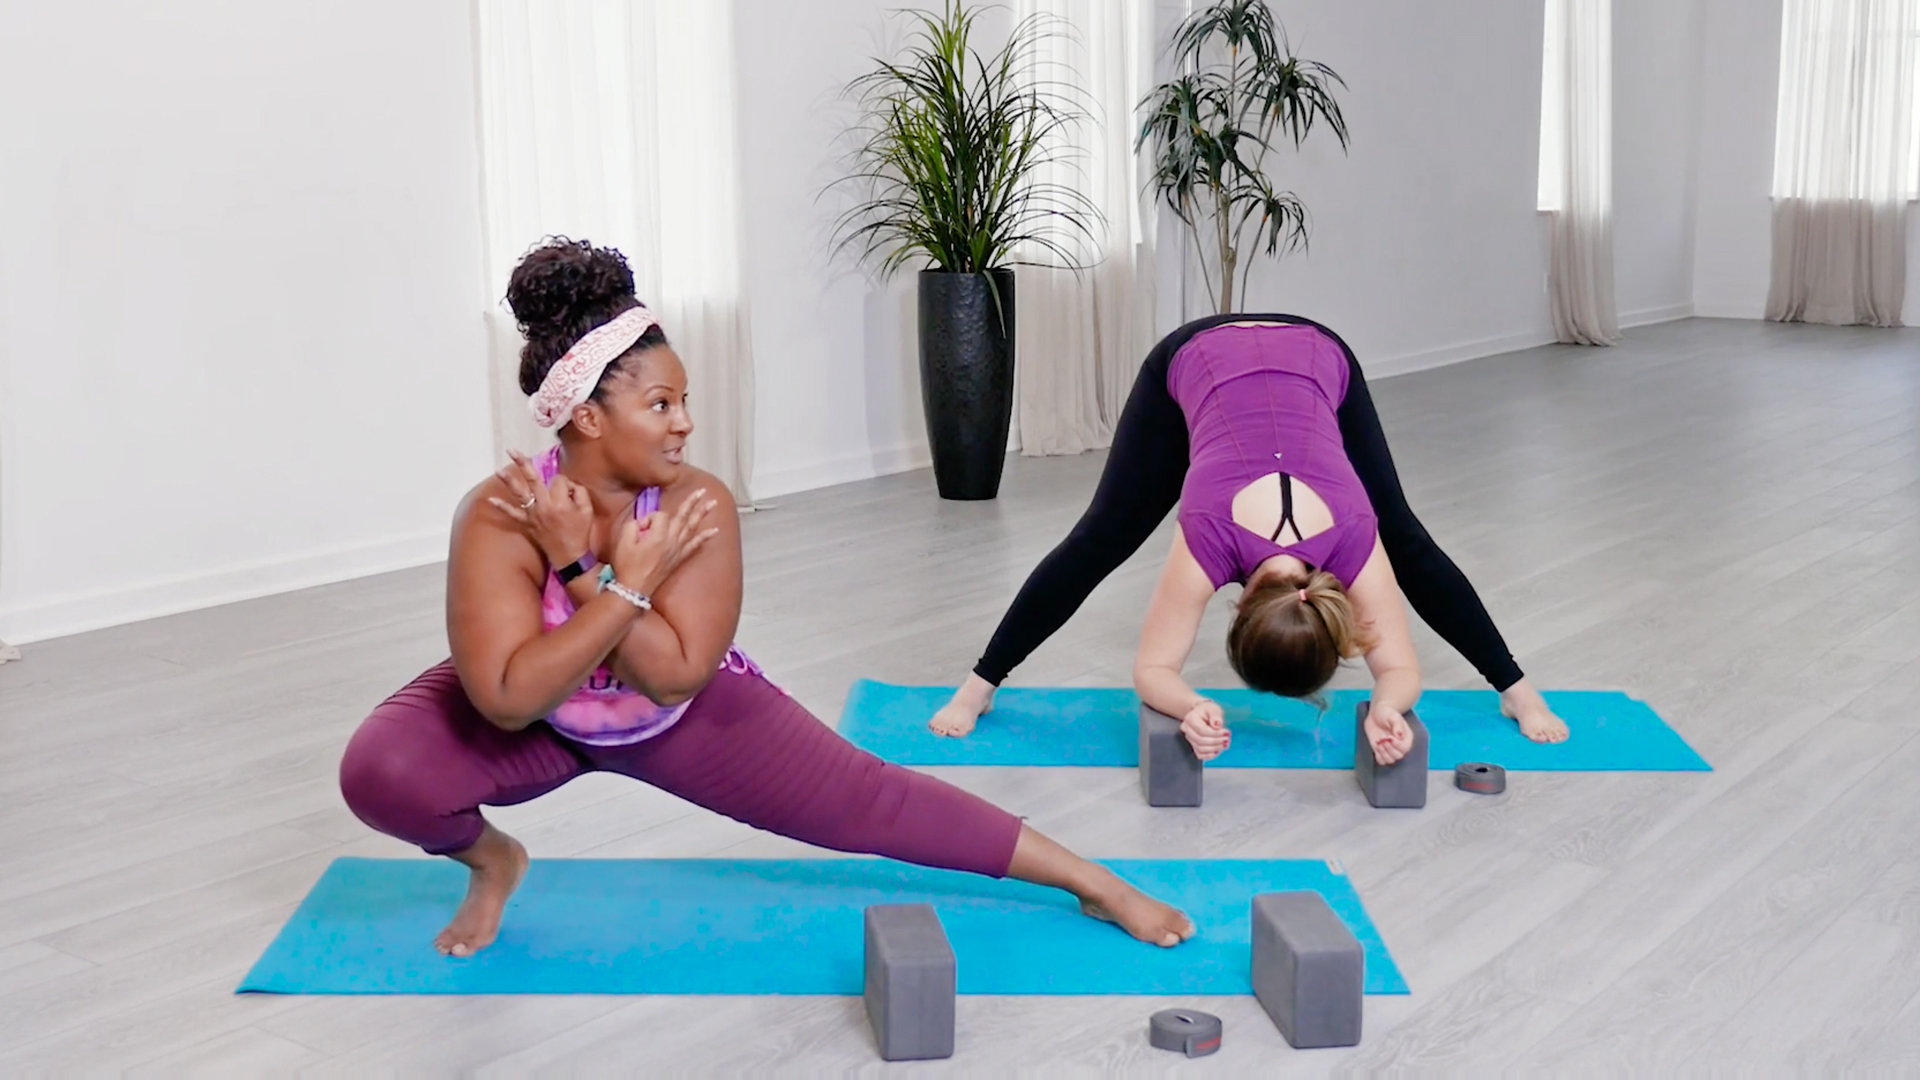 Watch Strength-Focused Yoga for Every Body | Prime Video